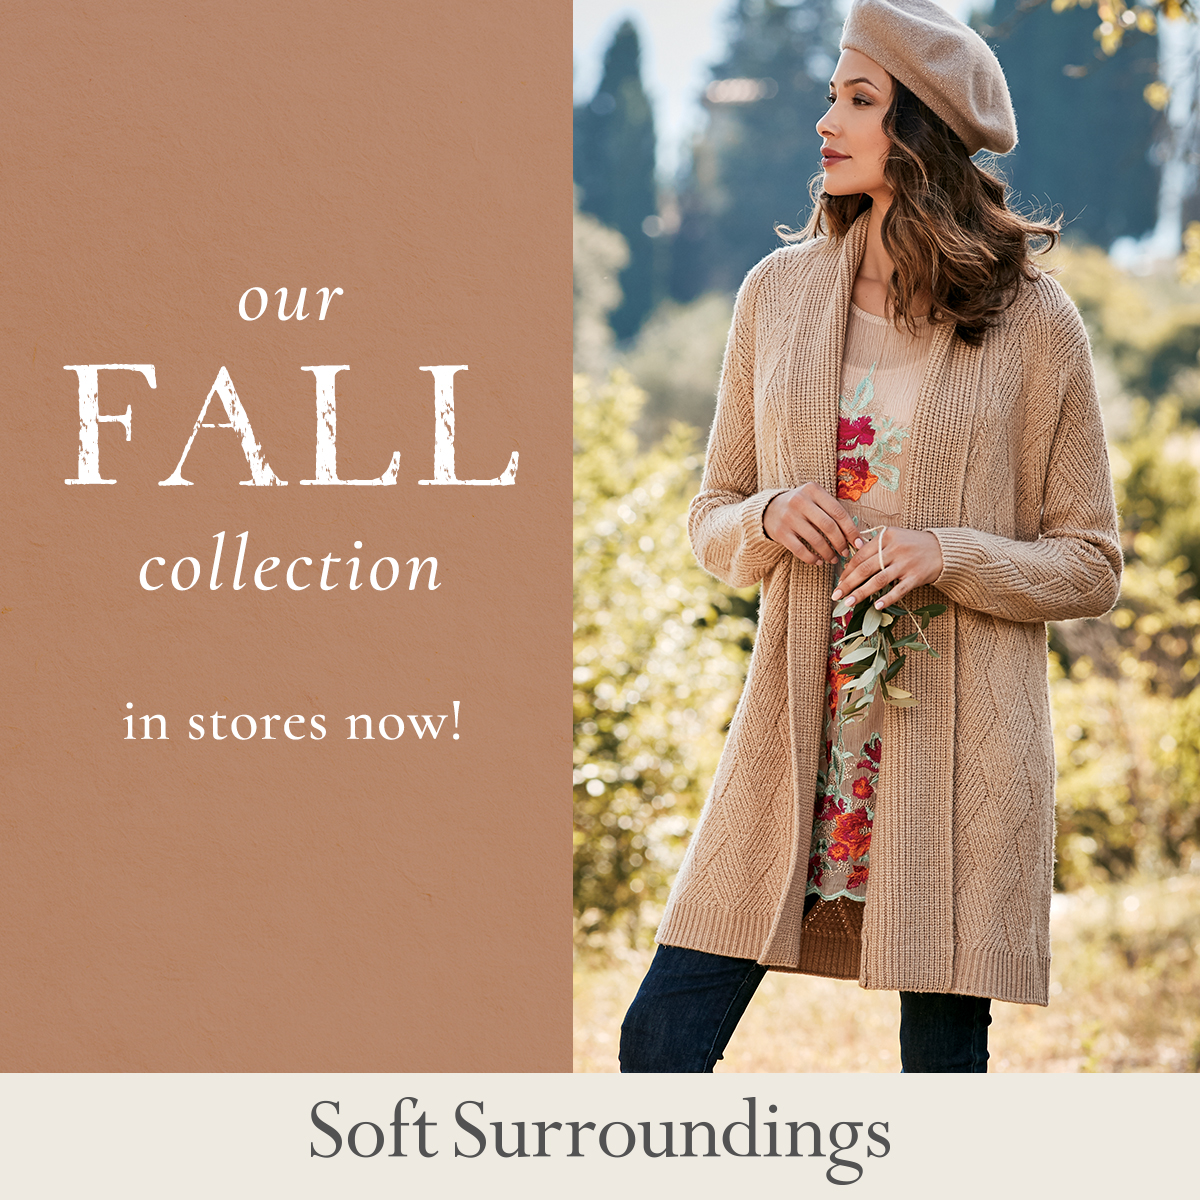 Soft Surroundings Fall Collection Now in Stores! from Soft Surroundings